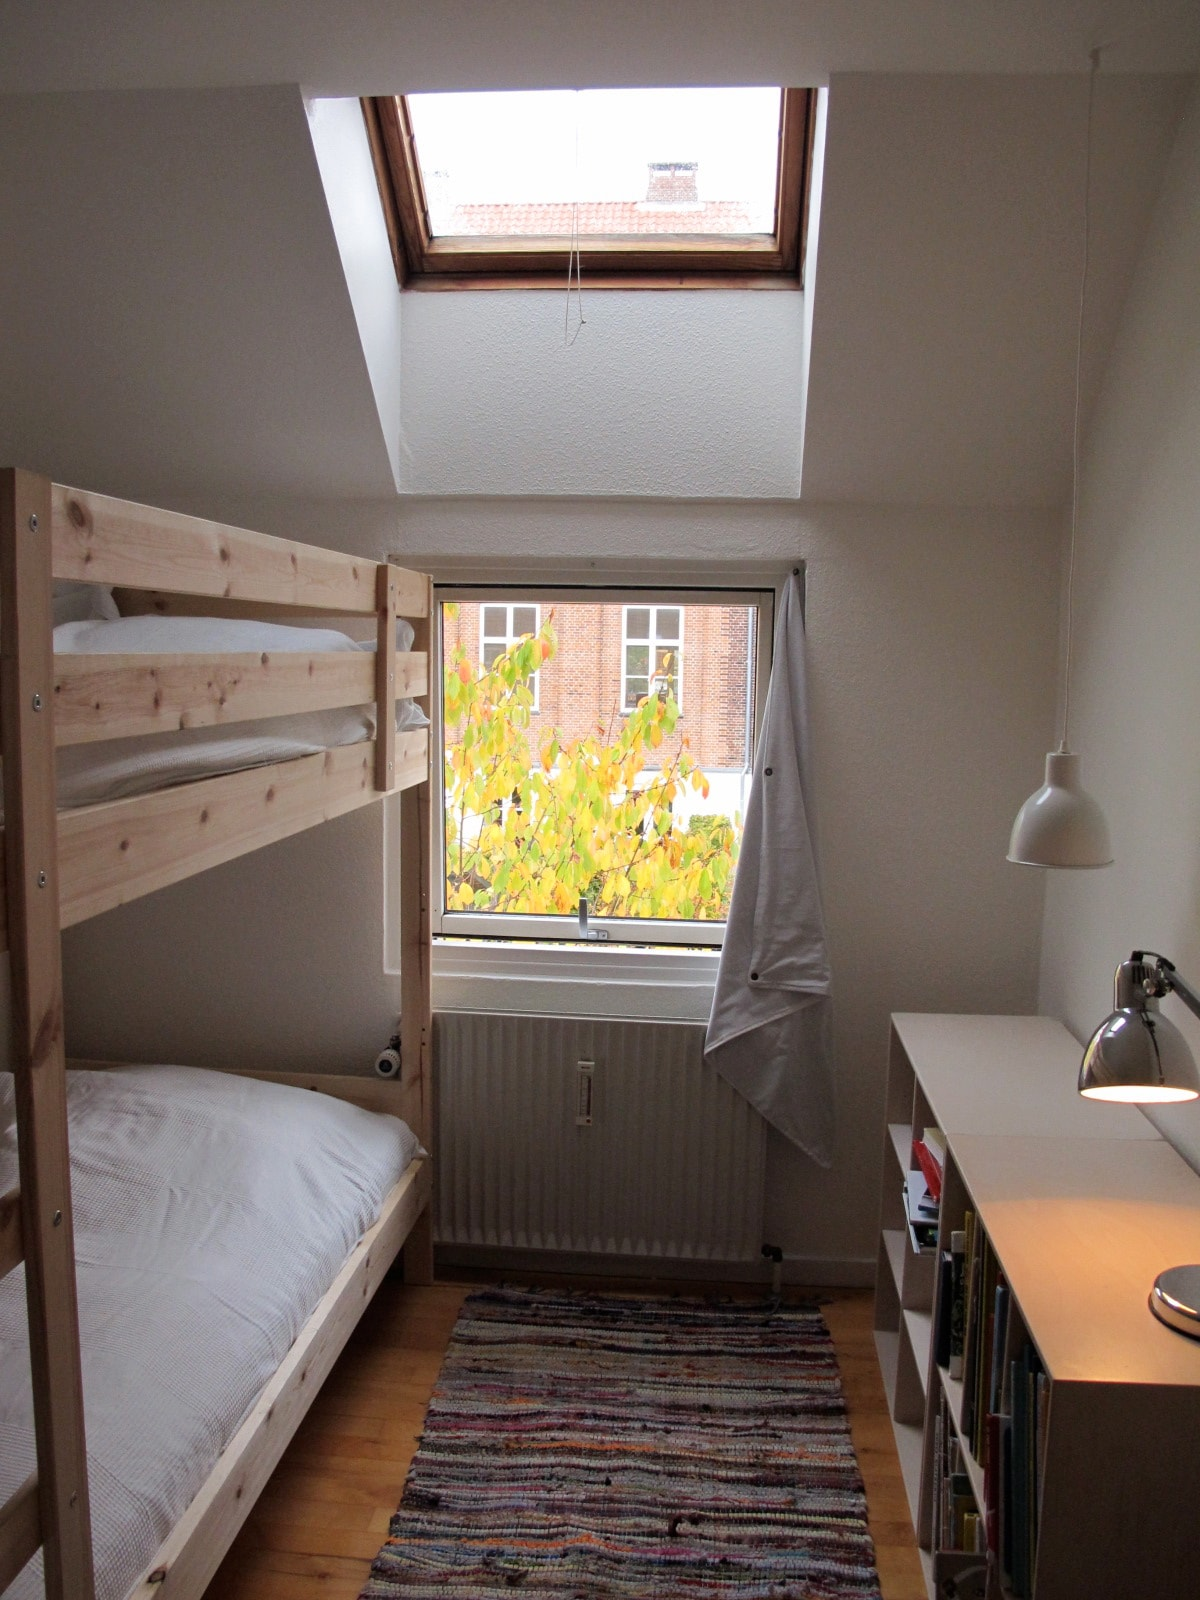 Bedroom 3 with beds for two